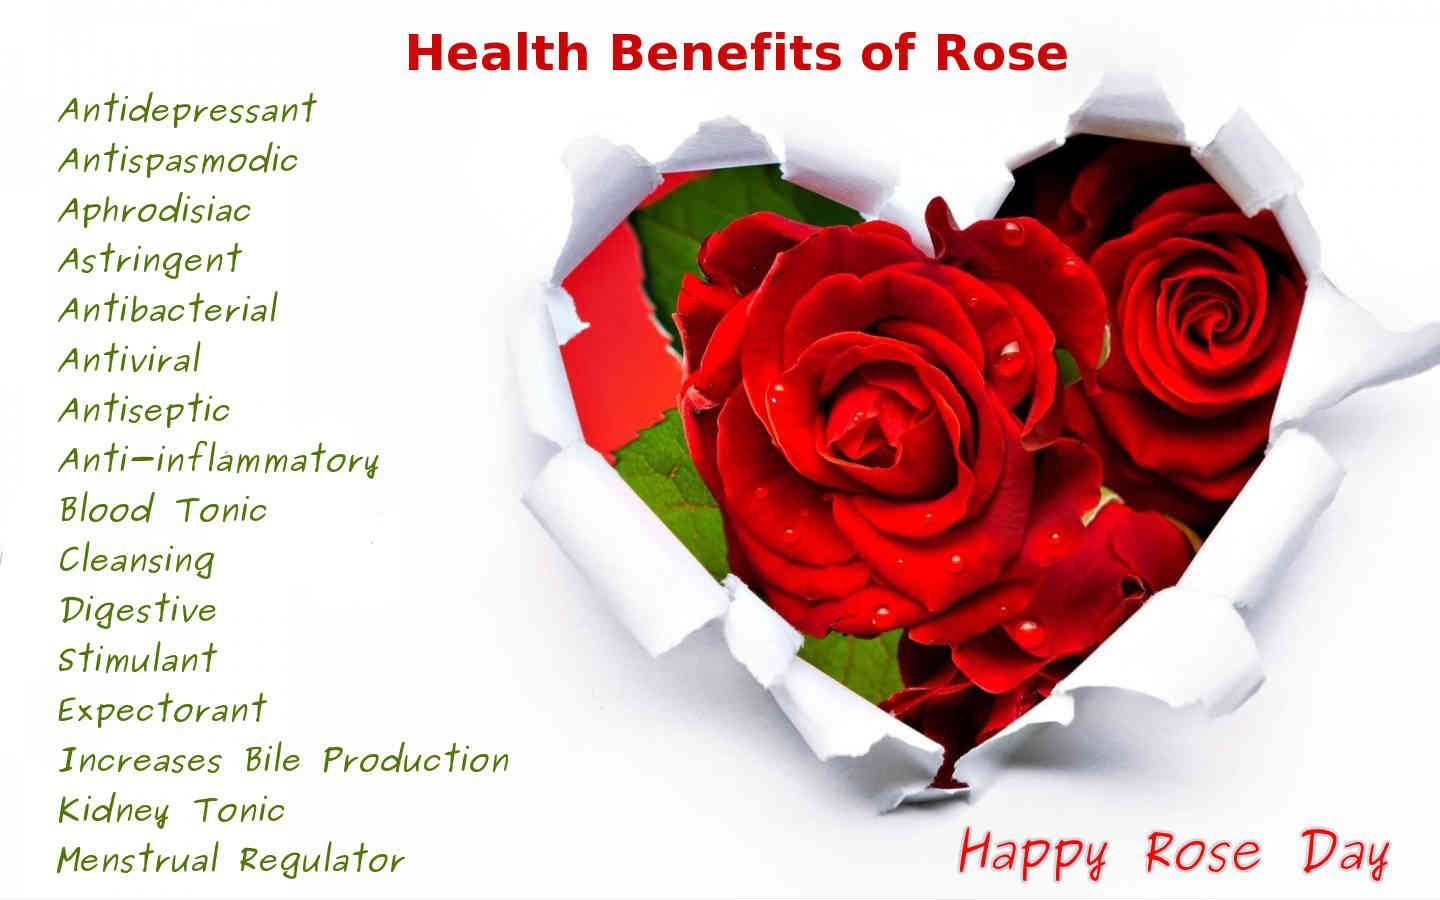 A Rose Is A Remedy Rose Has Amazing Healing Properties For Health Skin There Are Also Many Sur Love Rose Images Rose Day Wallpaper Love Rose Flower